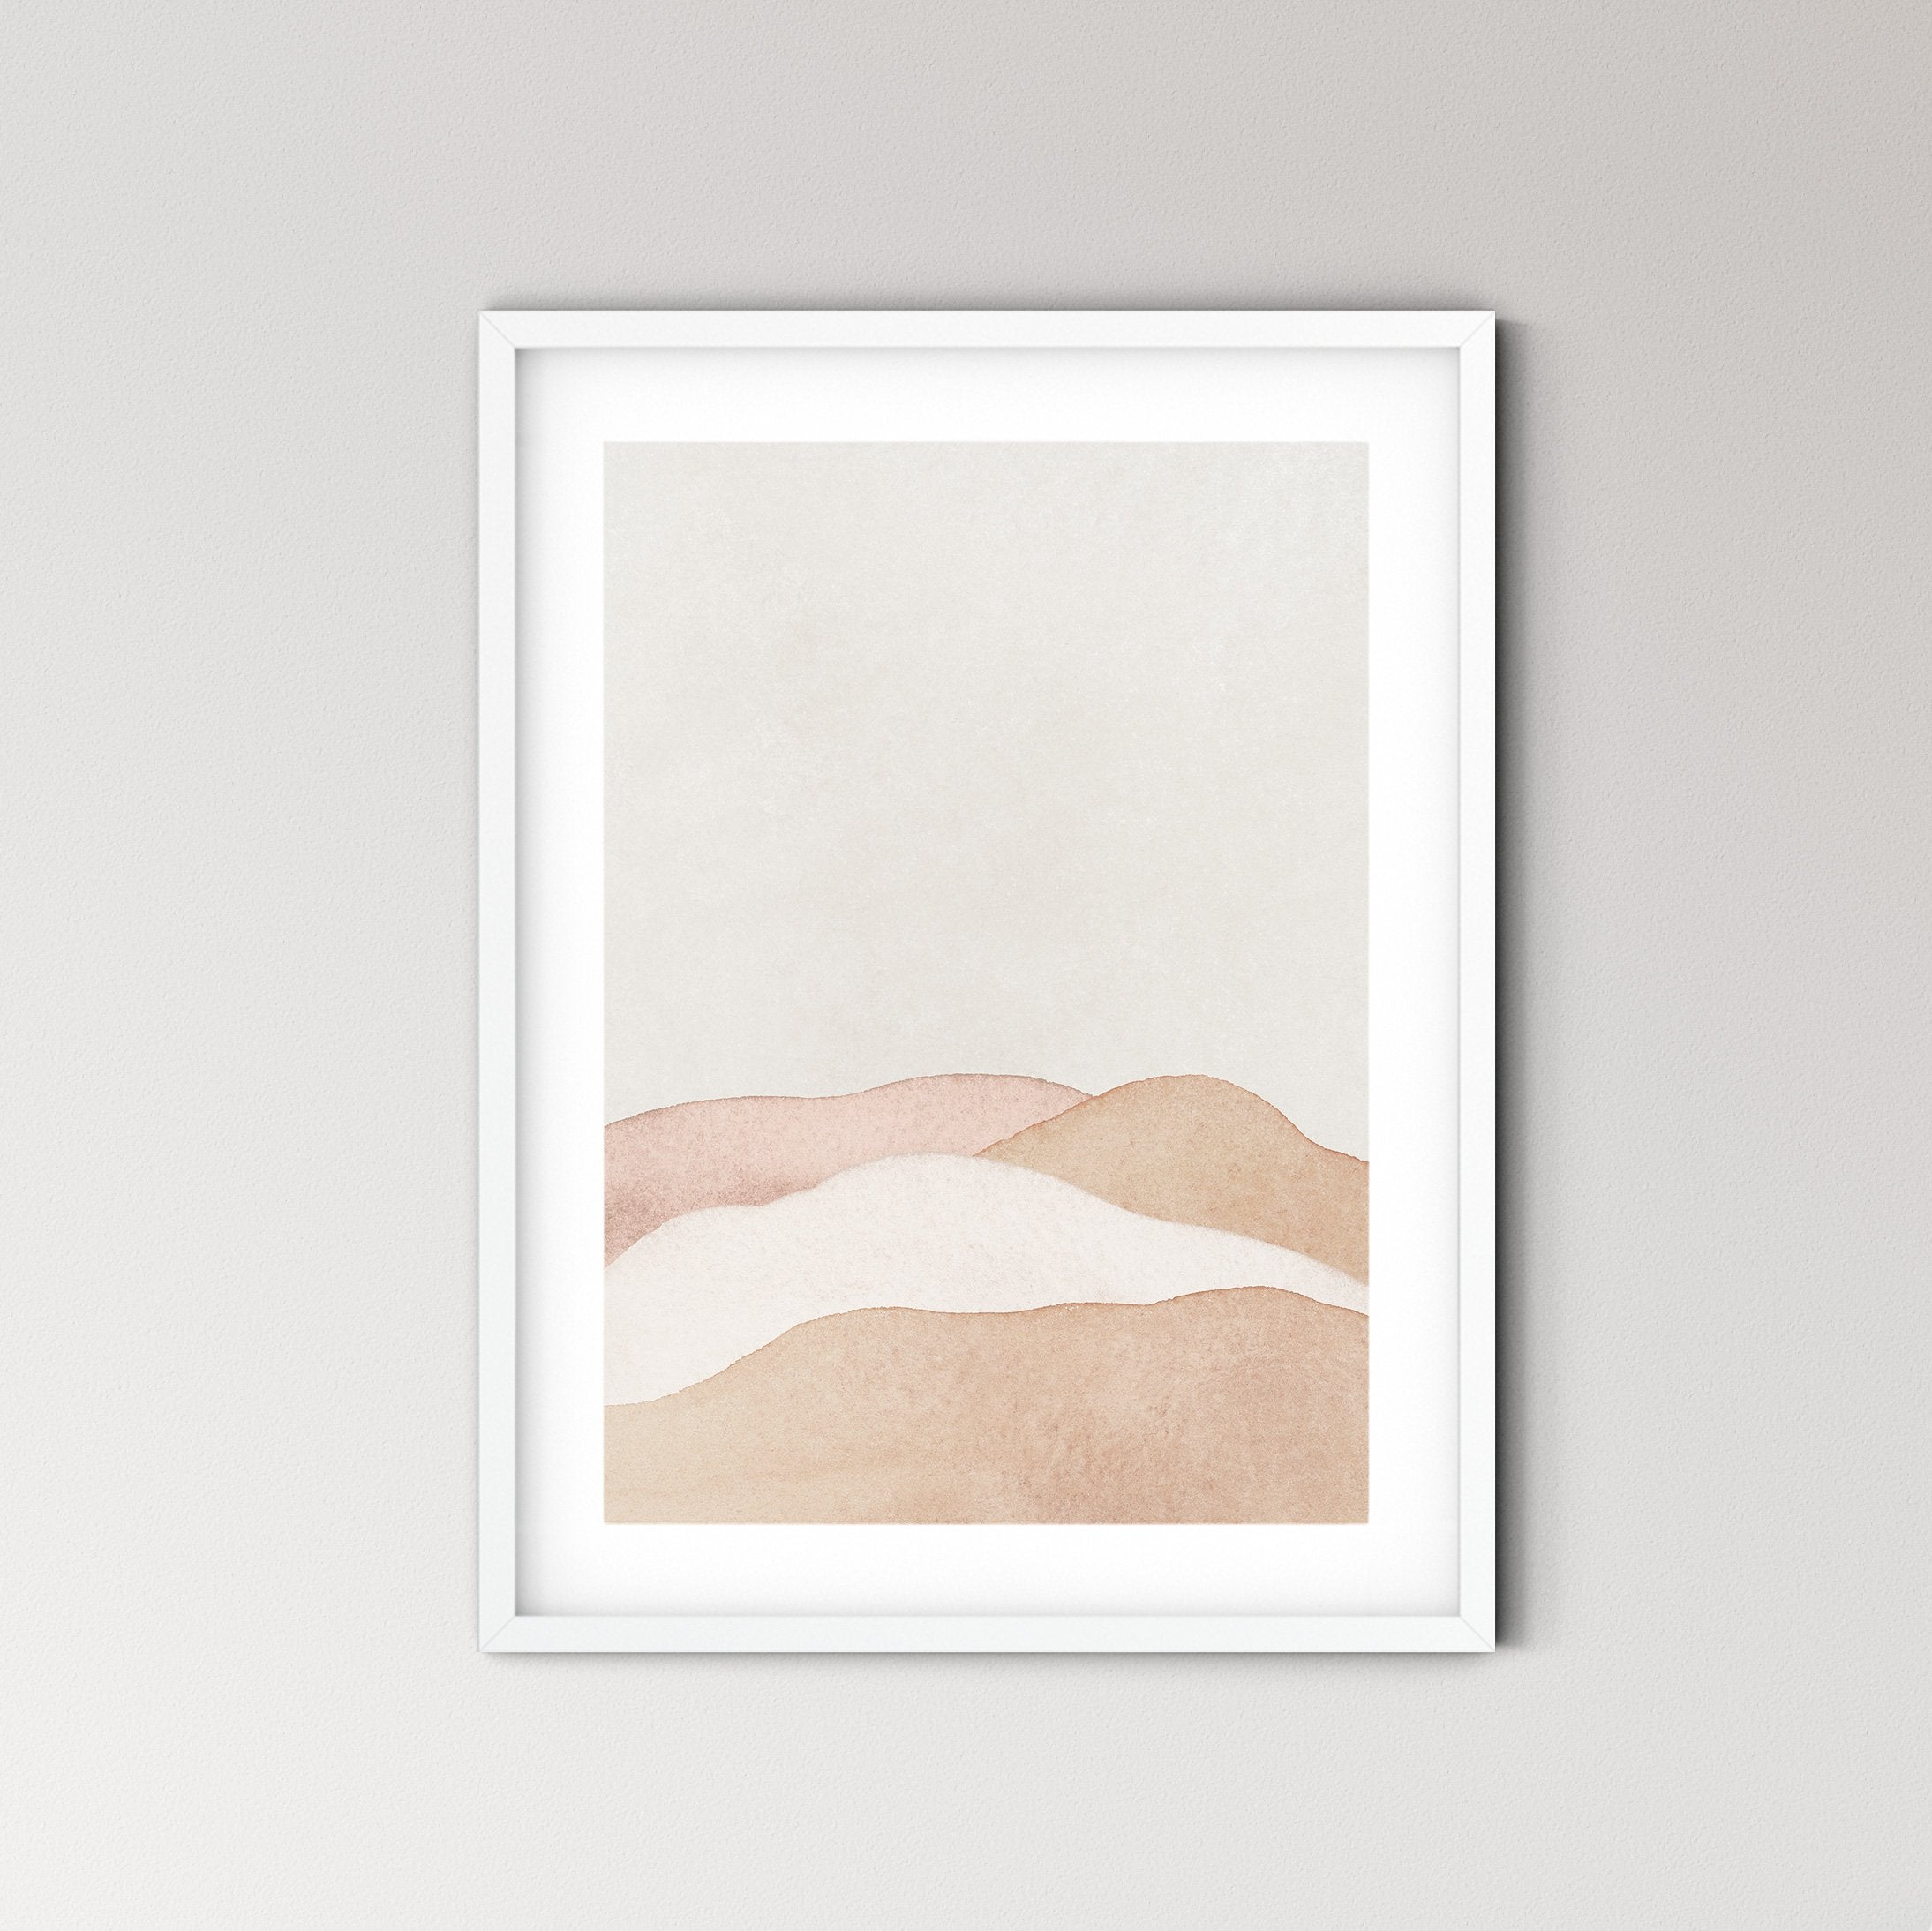 Earthy Abstract Landscape Art Print No.2 - Feathers and Stone